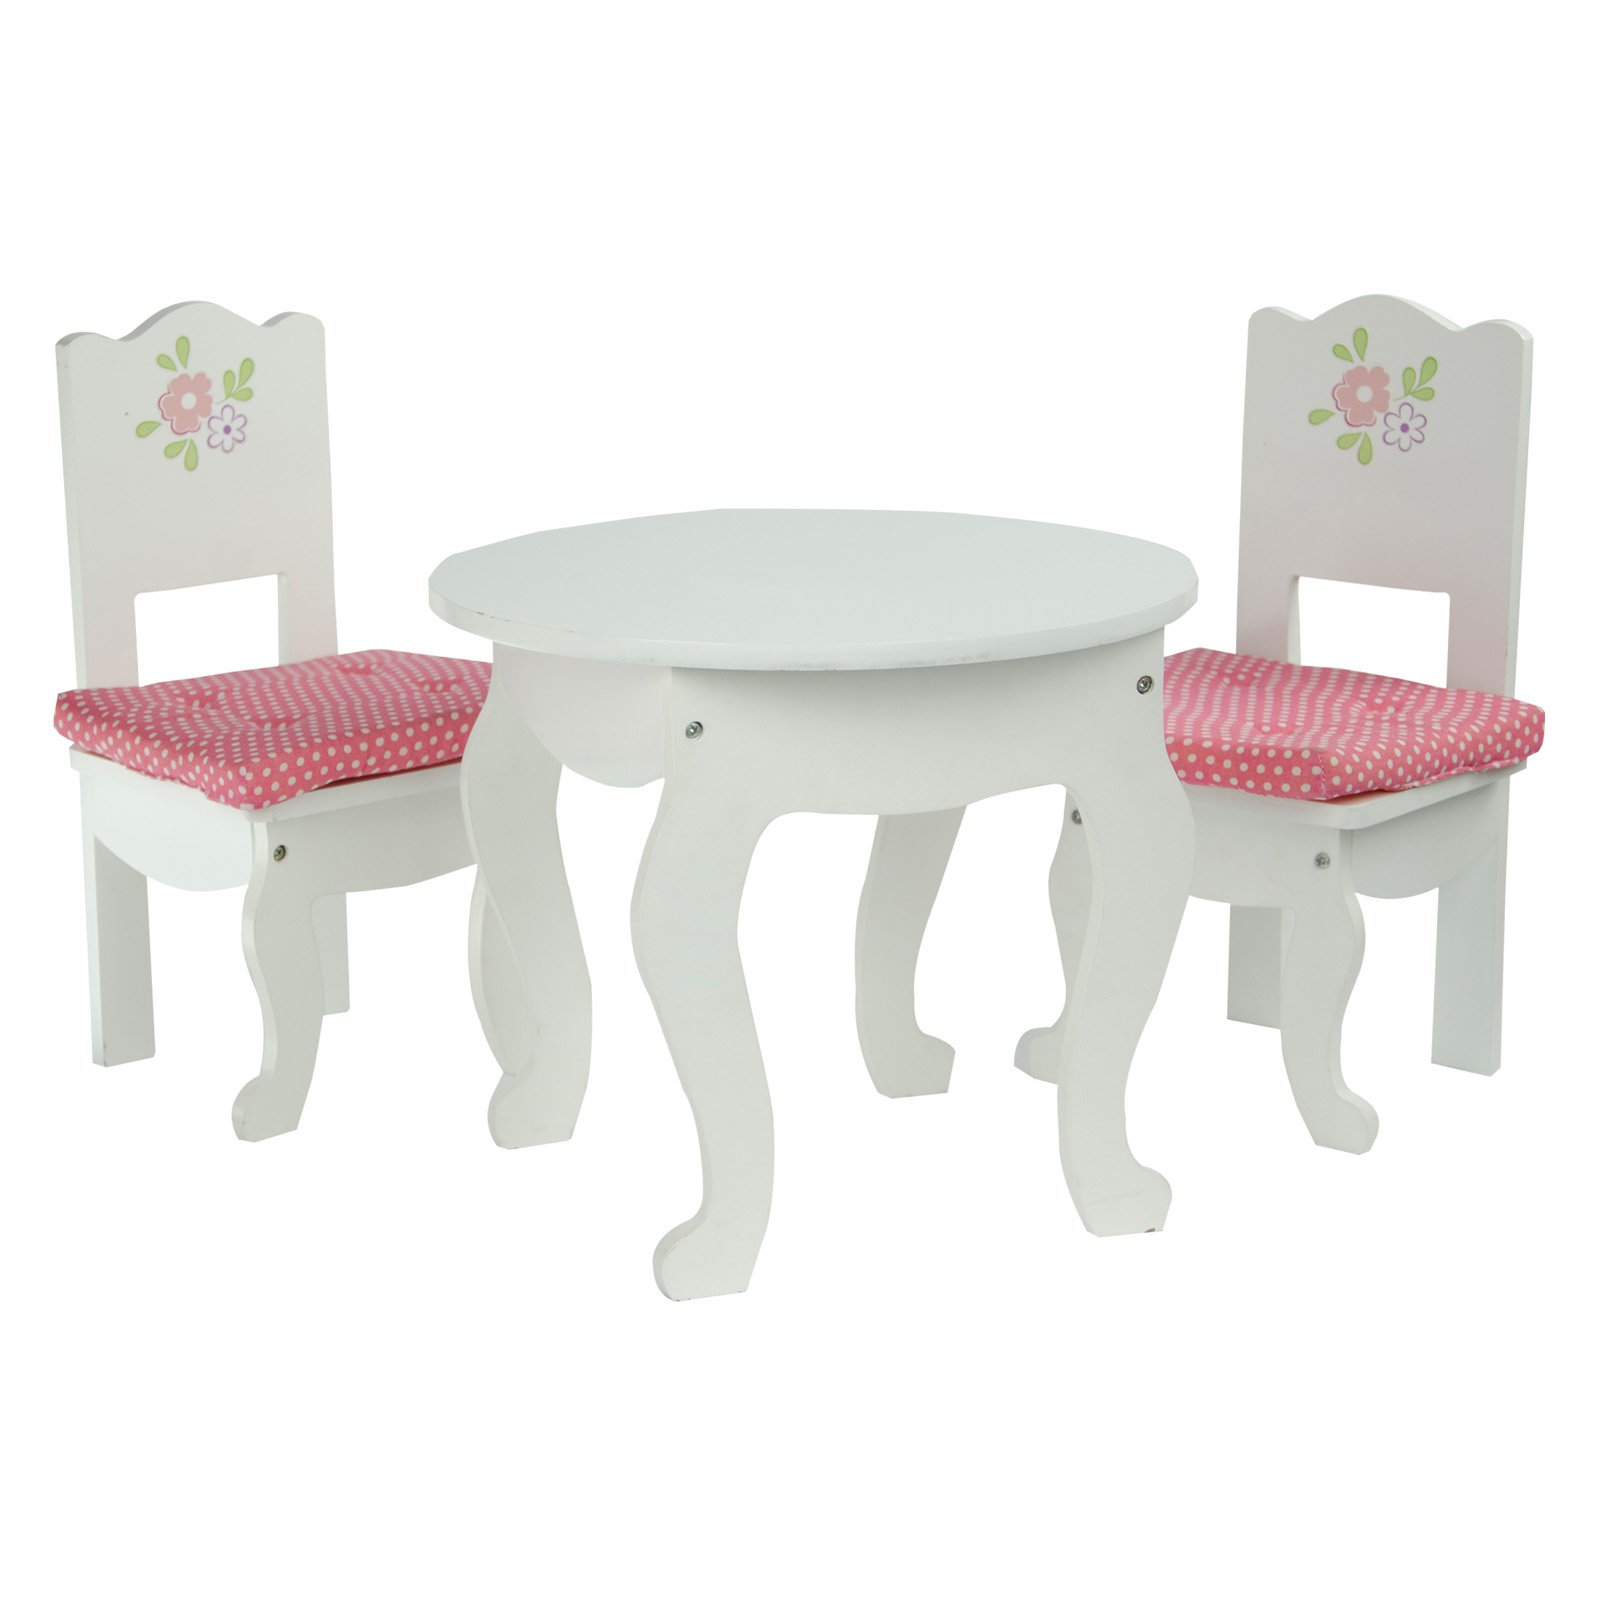 Little Kid Chairs Olivia S Little World Little Princess 18